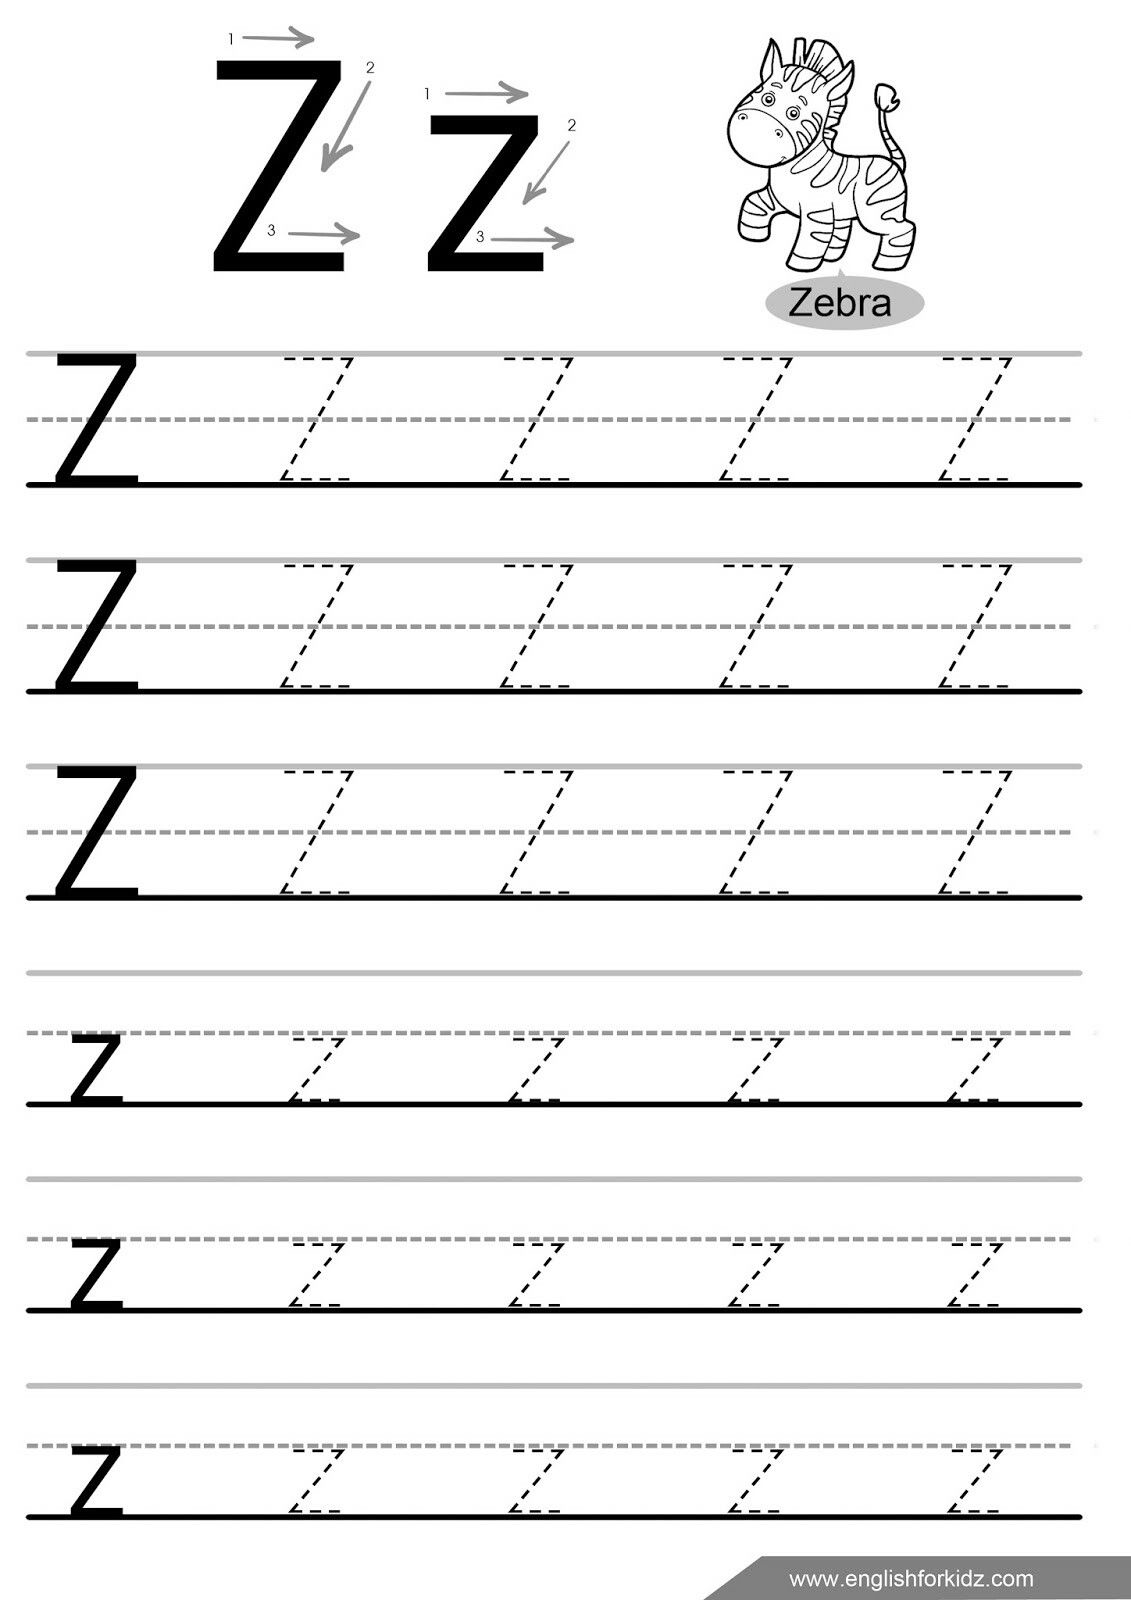 Pin By Tasbeih Muhammed On English Letters Tracing In 2020 Alphabet Tracing Worksheets Letter Tracing Worksheets Writing Practice Worksheets [ 1600 x 1131 Pixel ]